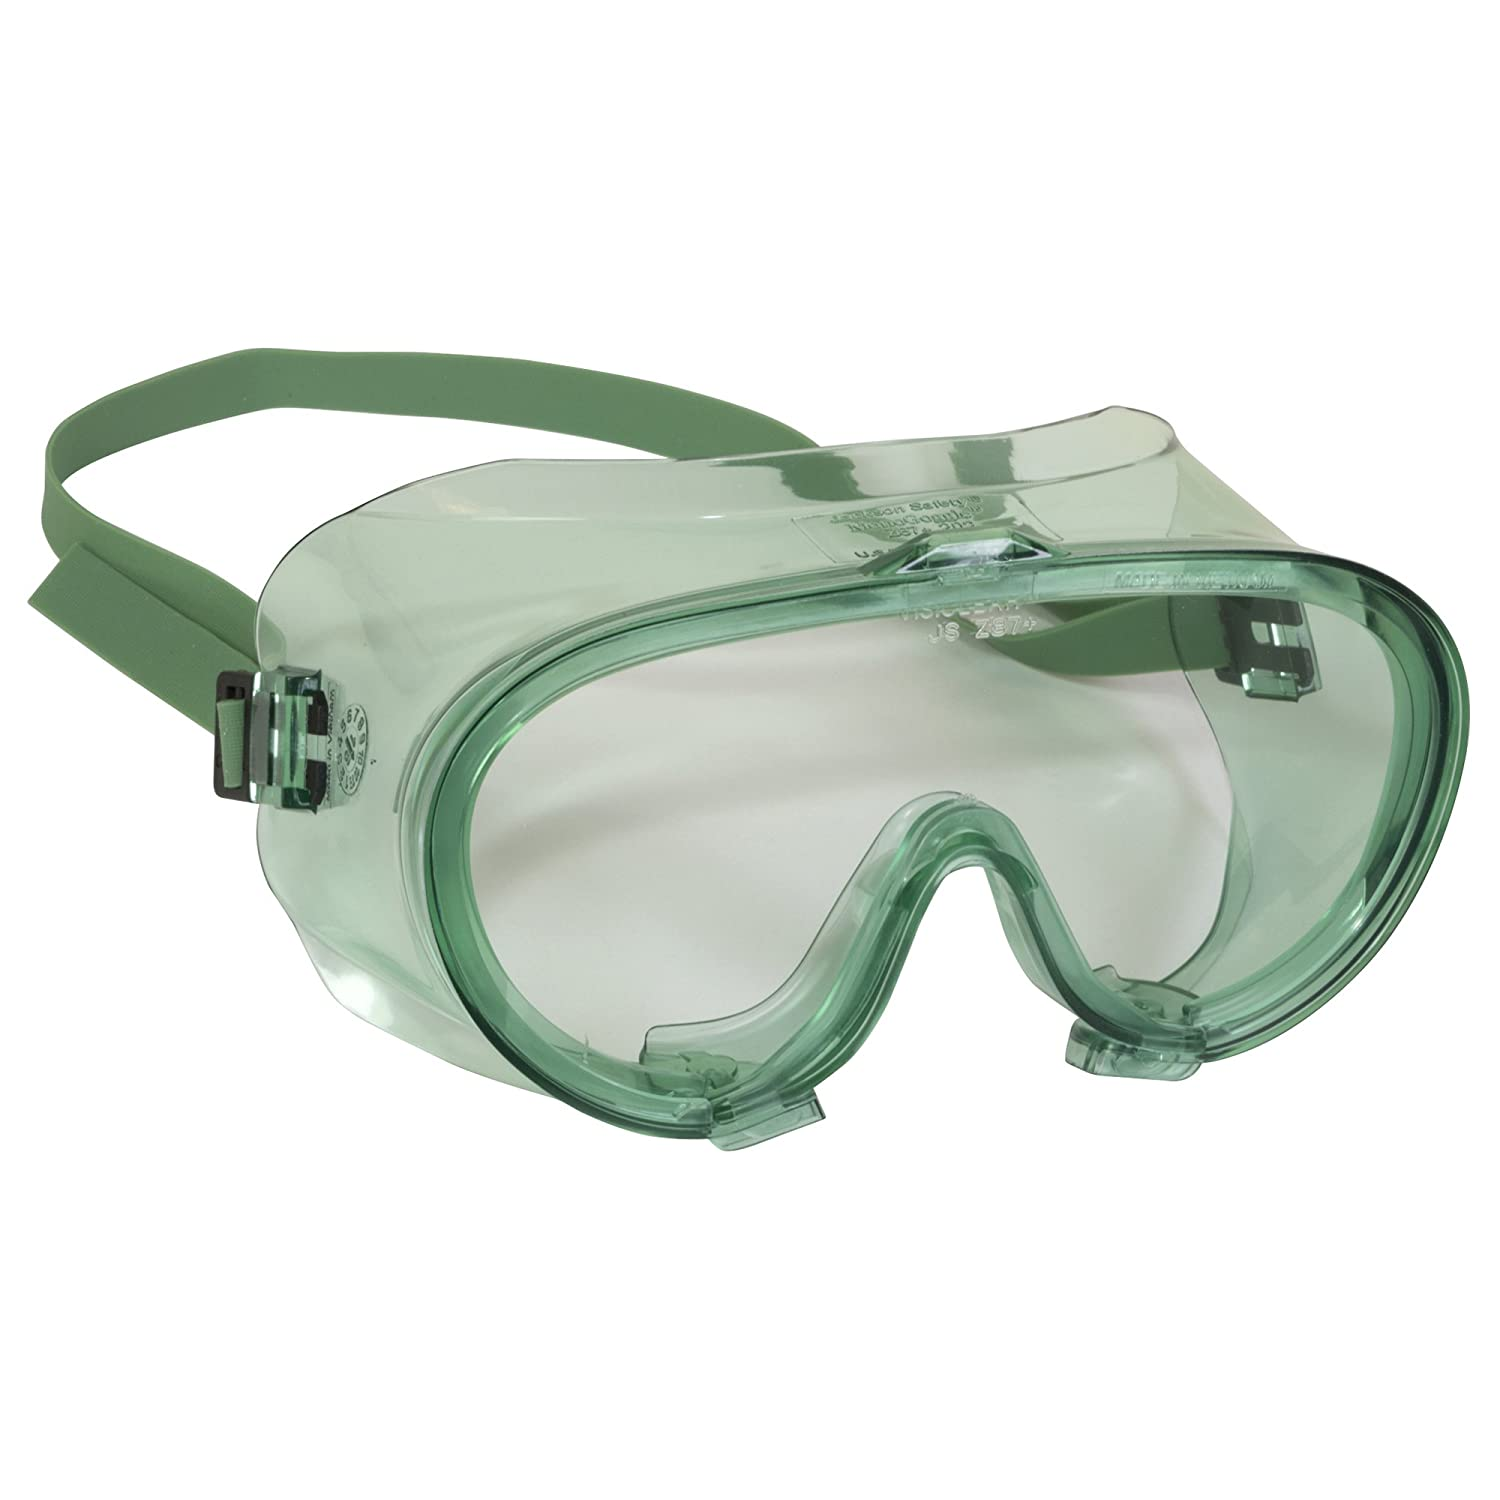 Clear Lens Green Frame Jackson Safety V70 Monogoggle 202 Safety Goggles 16666 6 Pairs // Case D4 // D5 Rating for Dust Protection